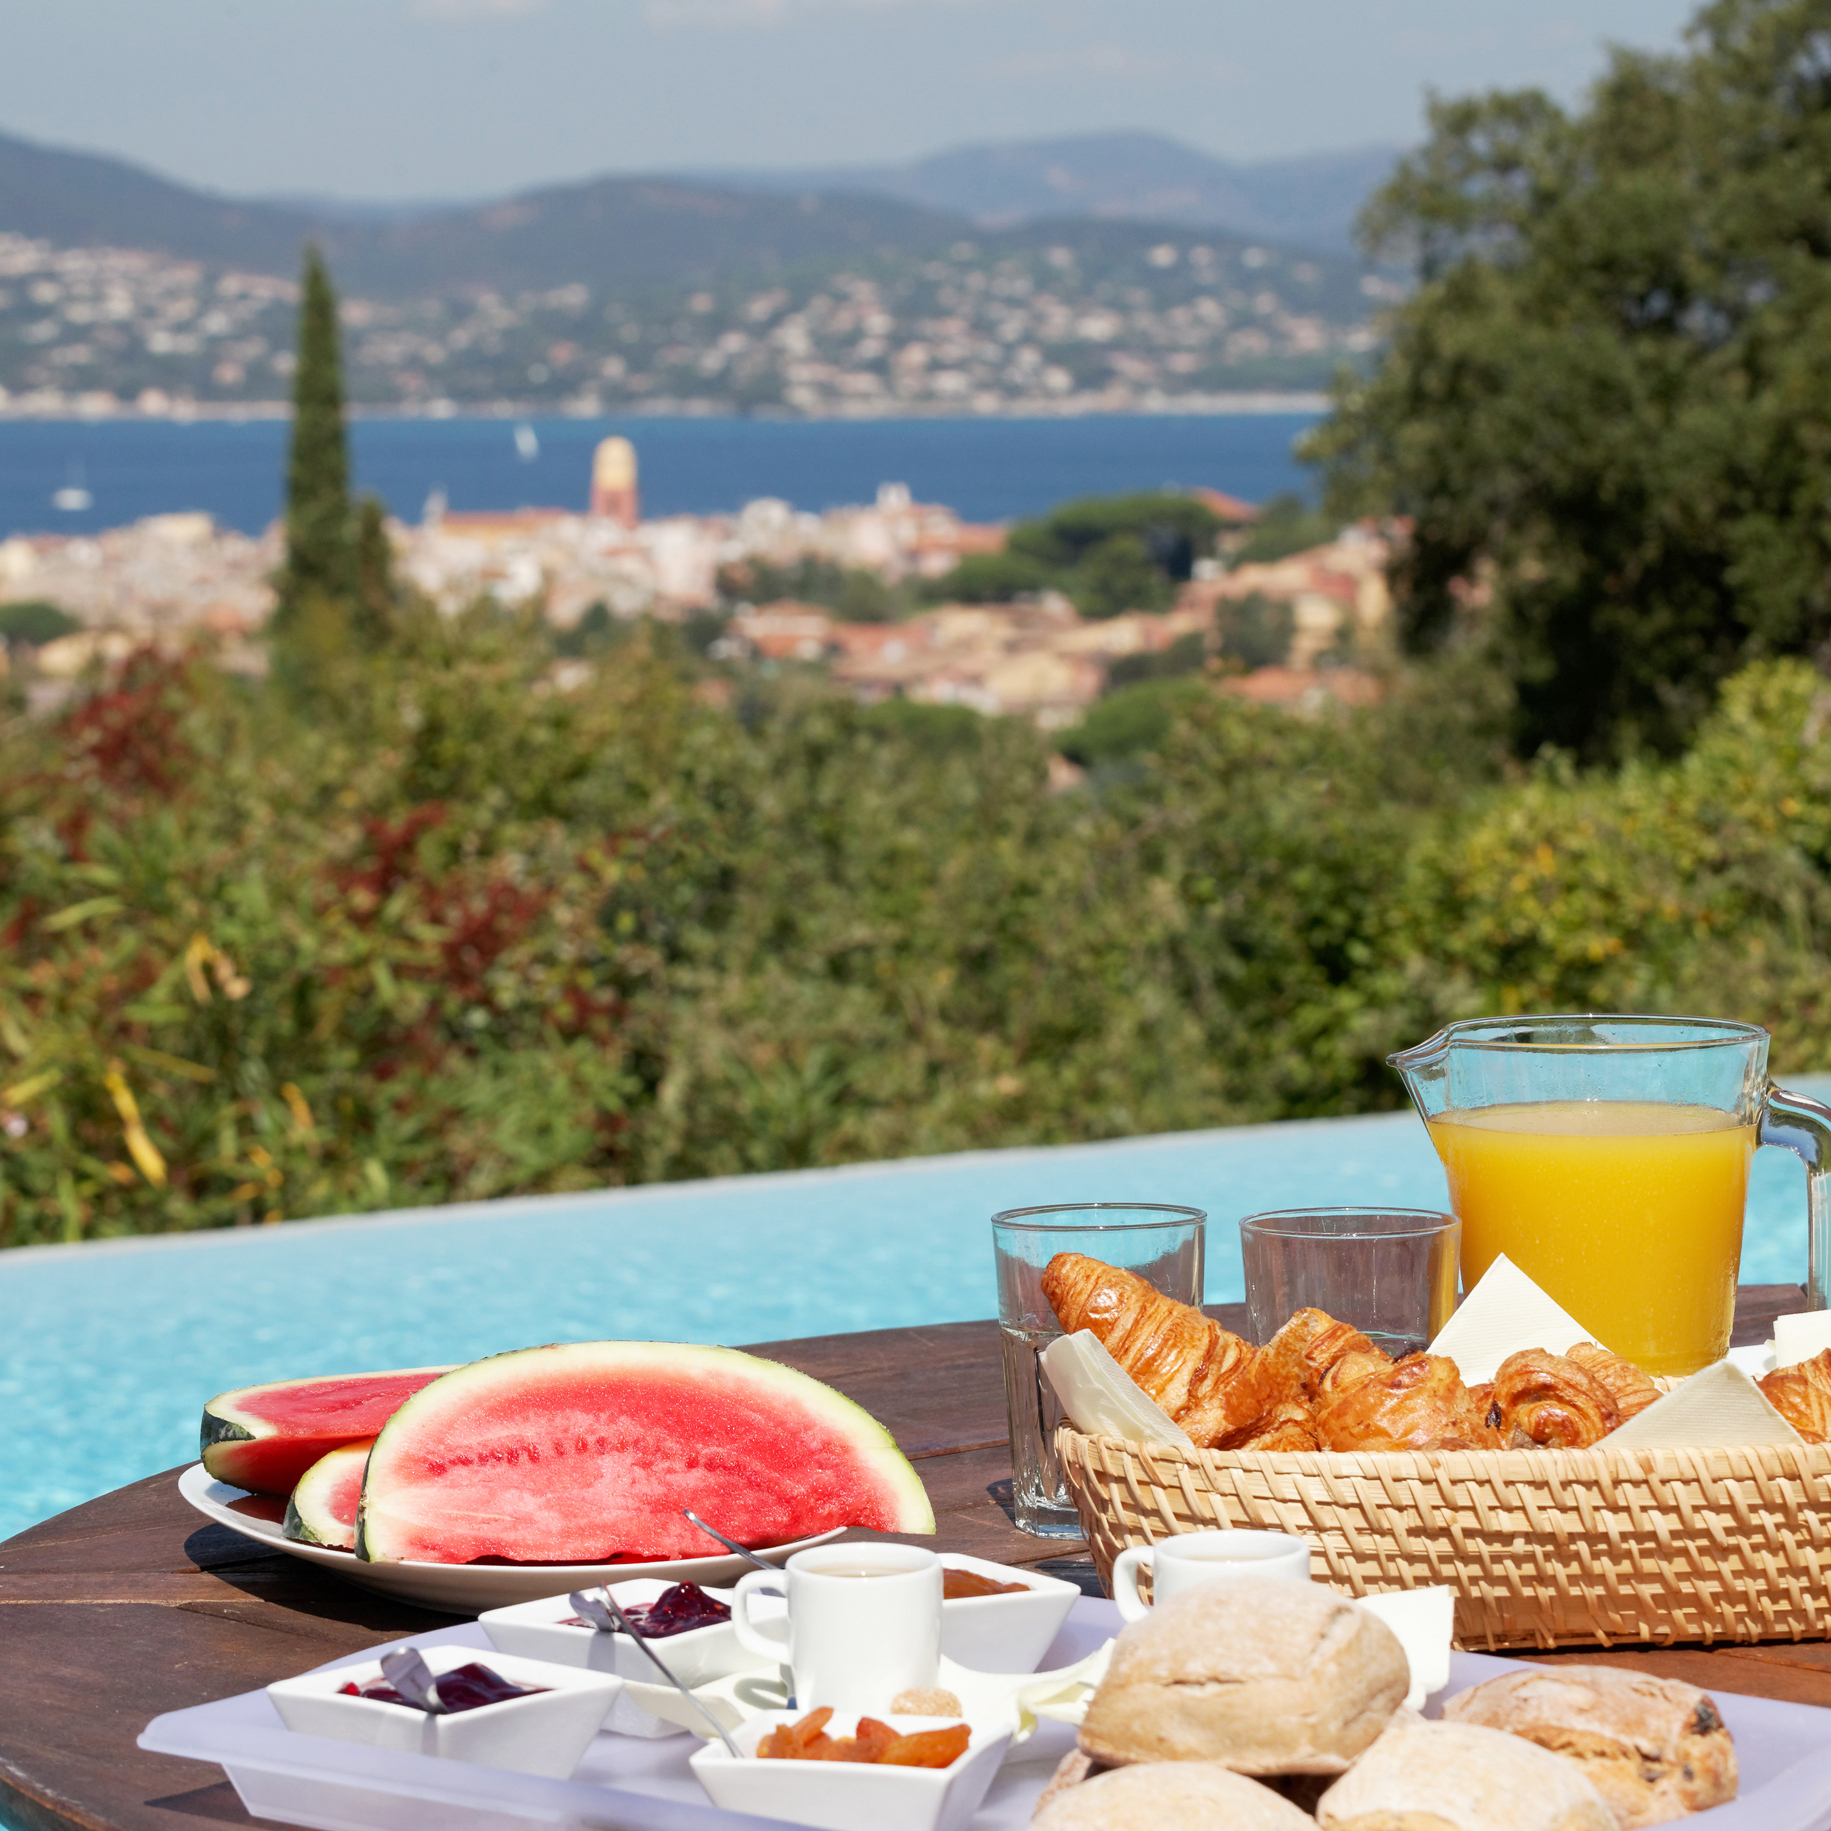 Views overlooking Saint Tropez